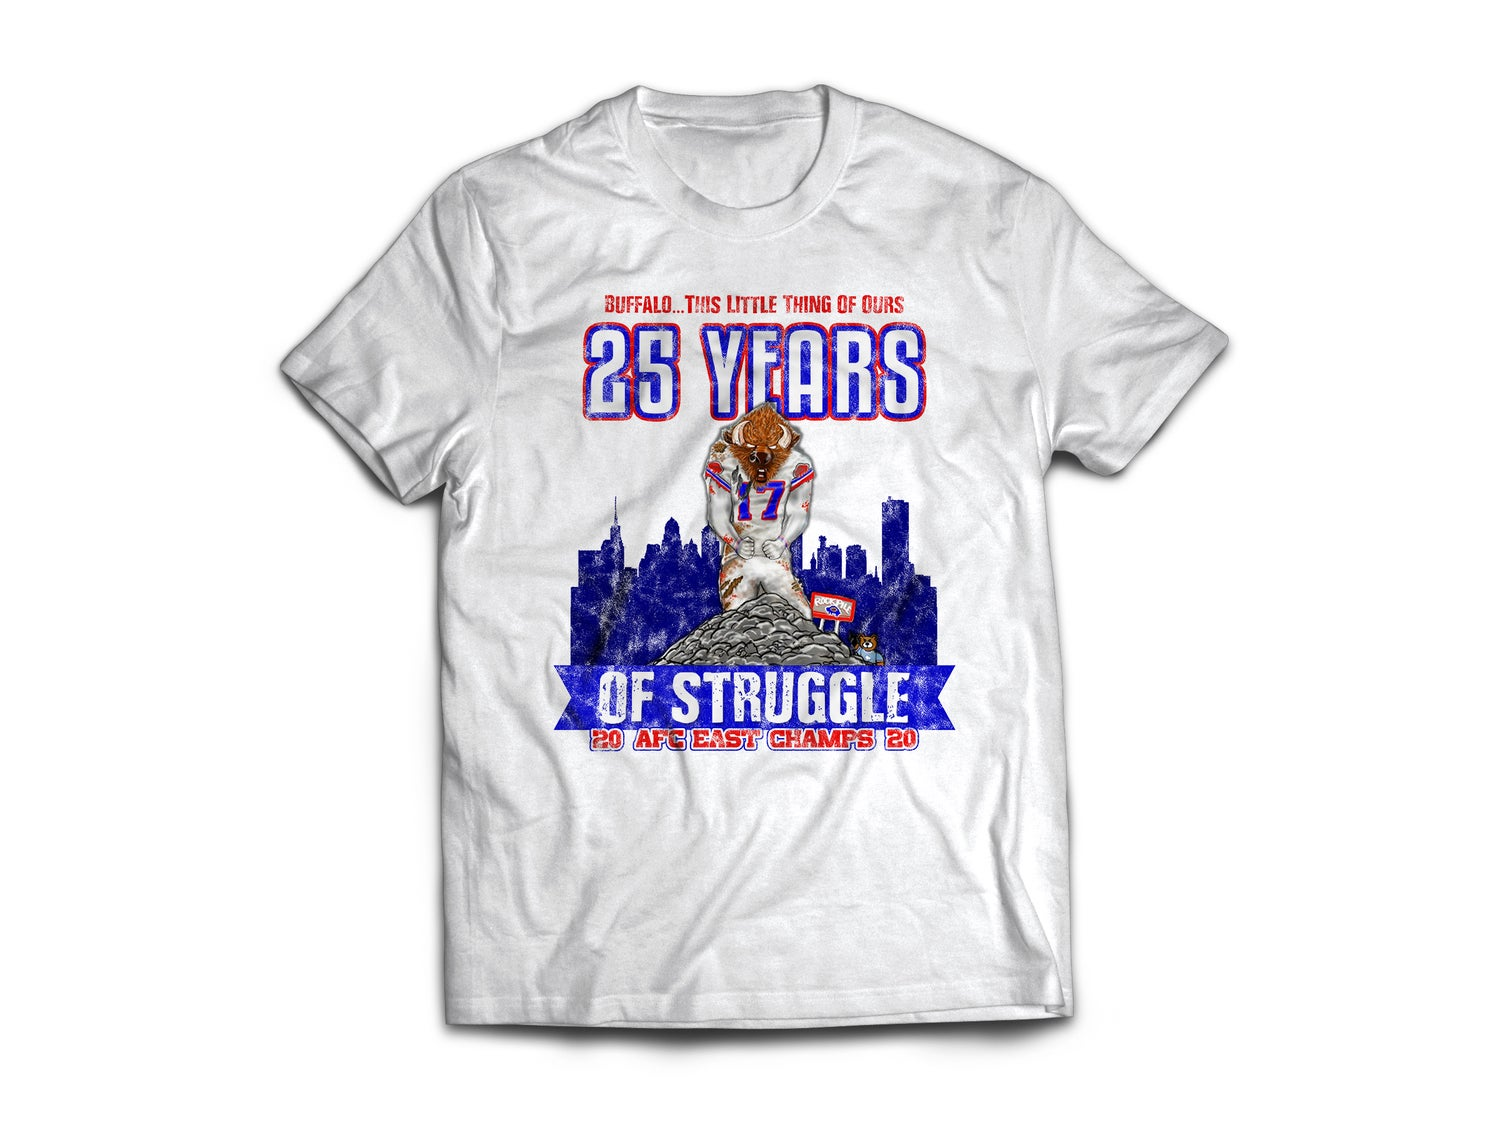 Bills Struggle Ponce tee shirt